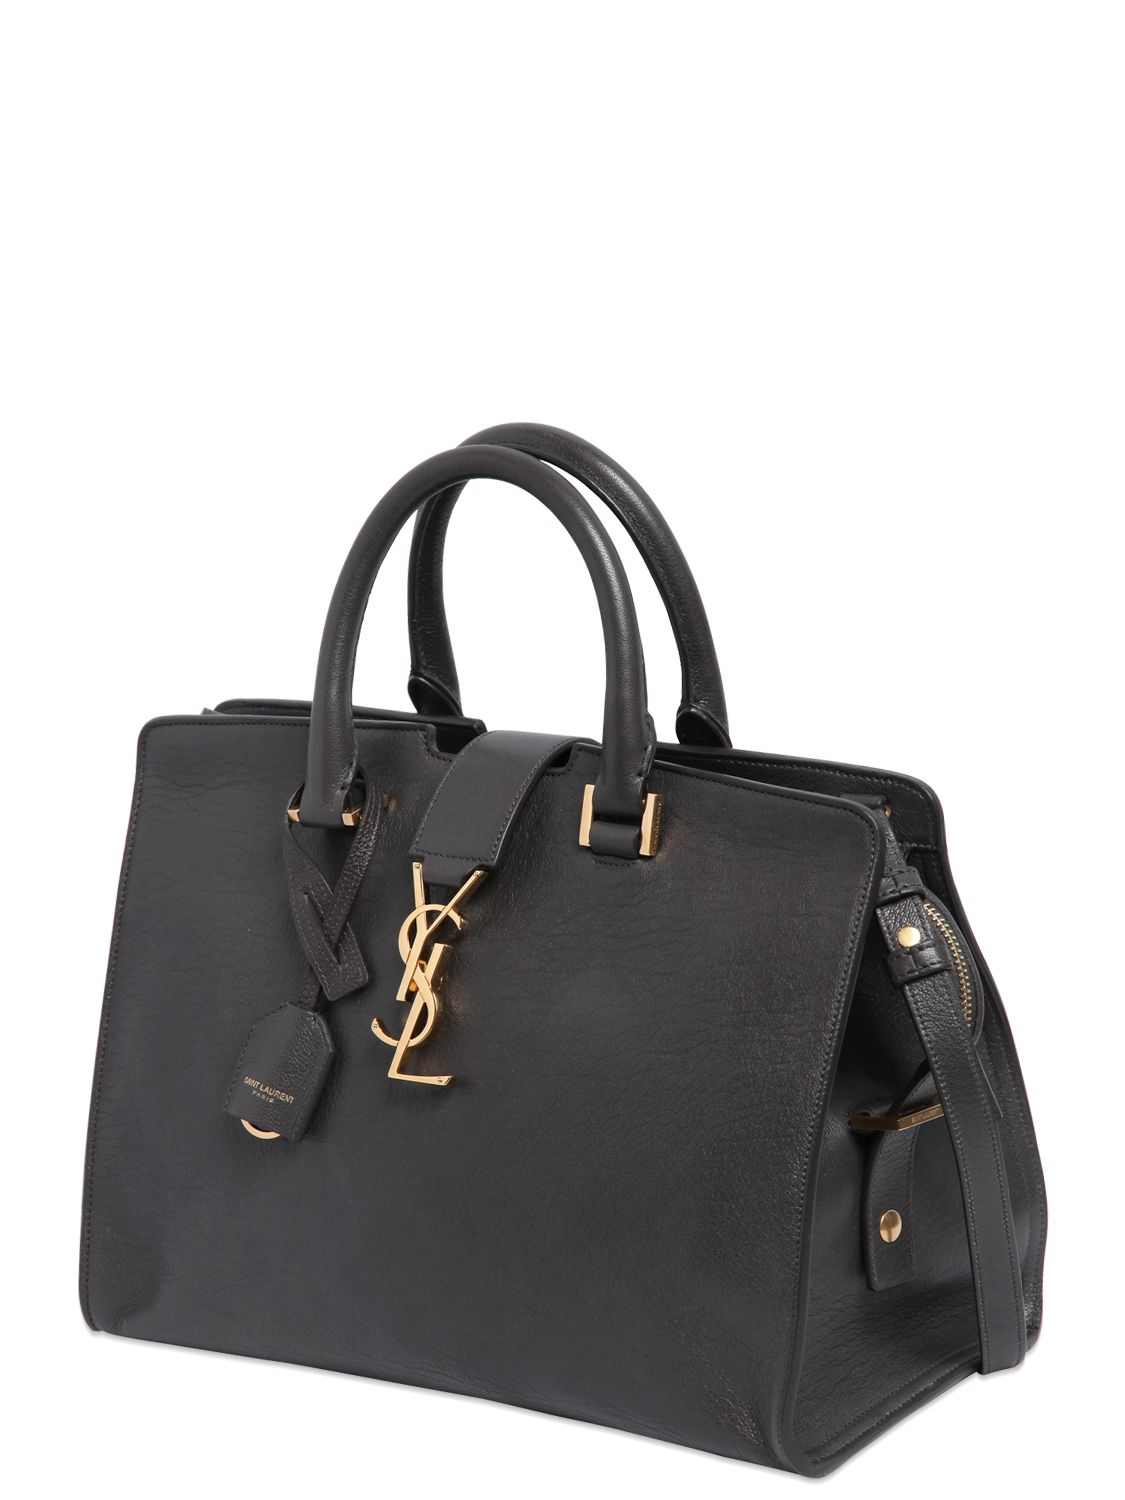 3a75d6256ee79 Lyst - Saint Laurent Small Cabas Monogram Leather Bag in Gray